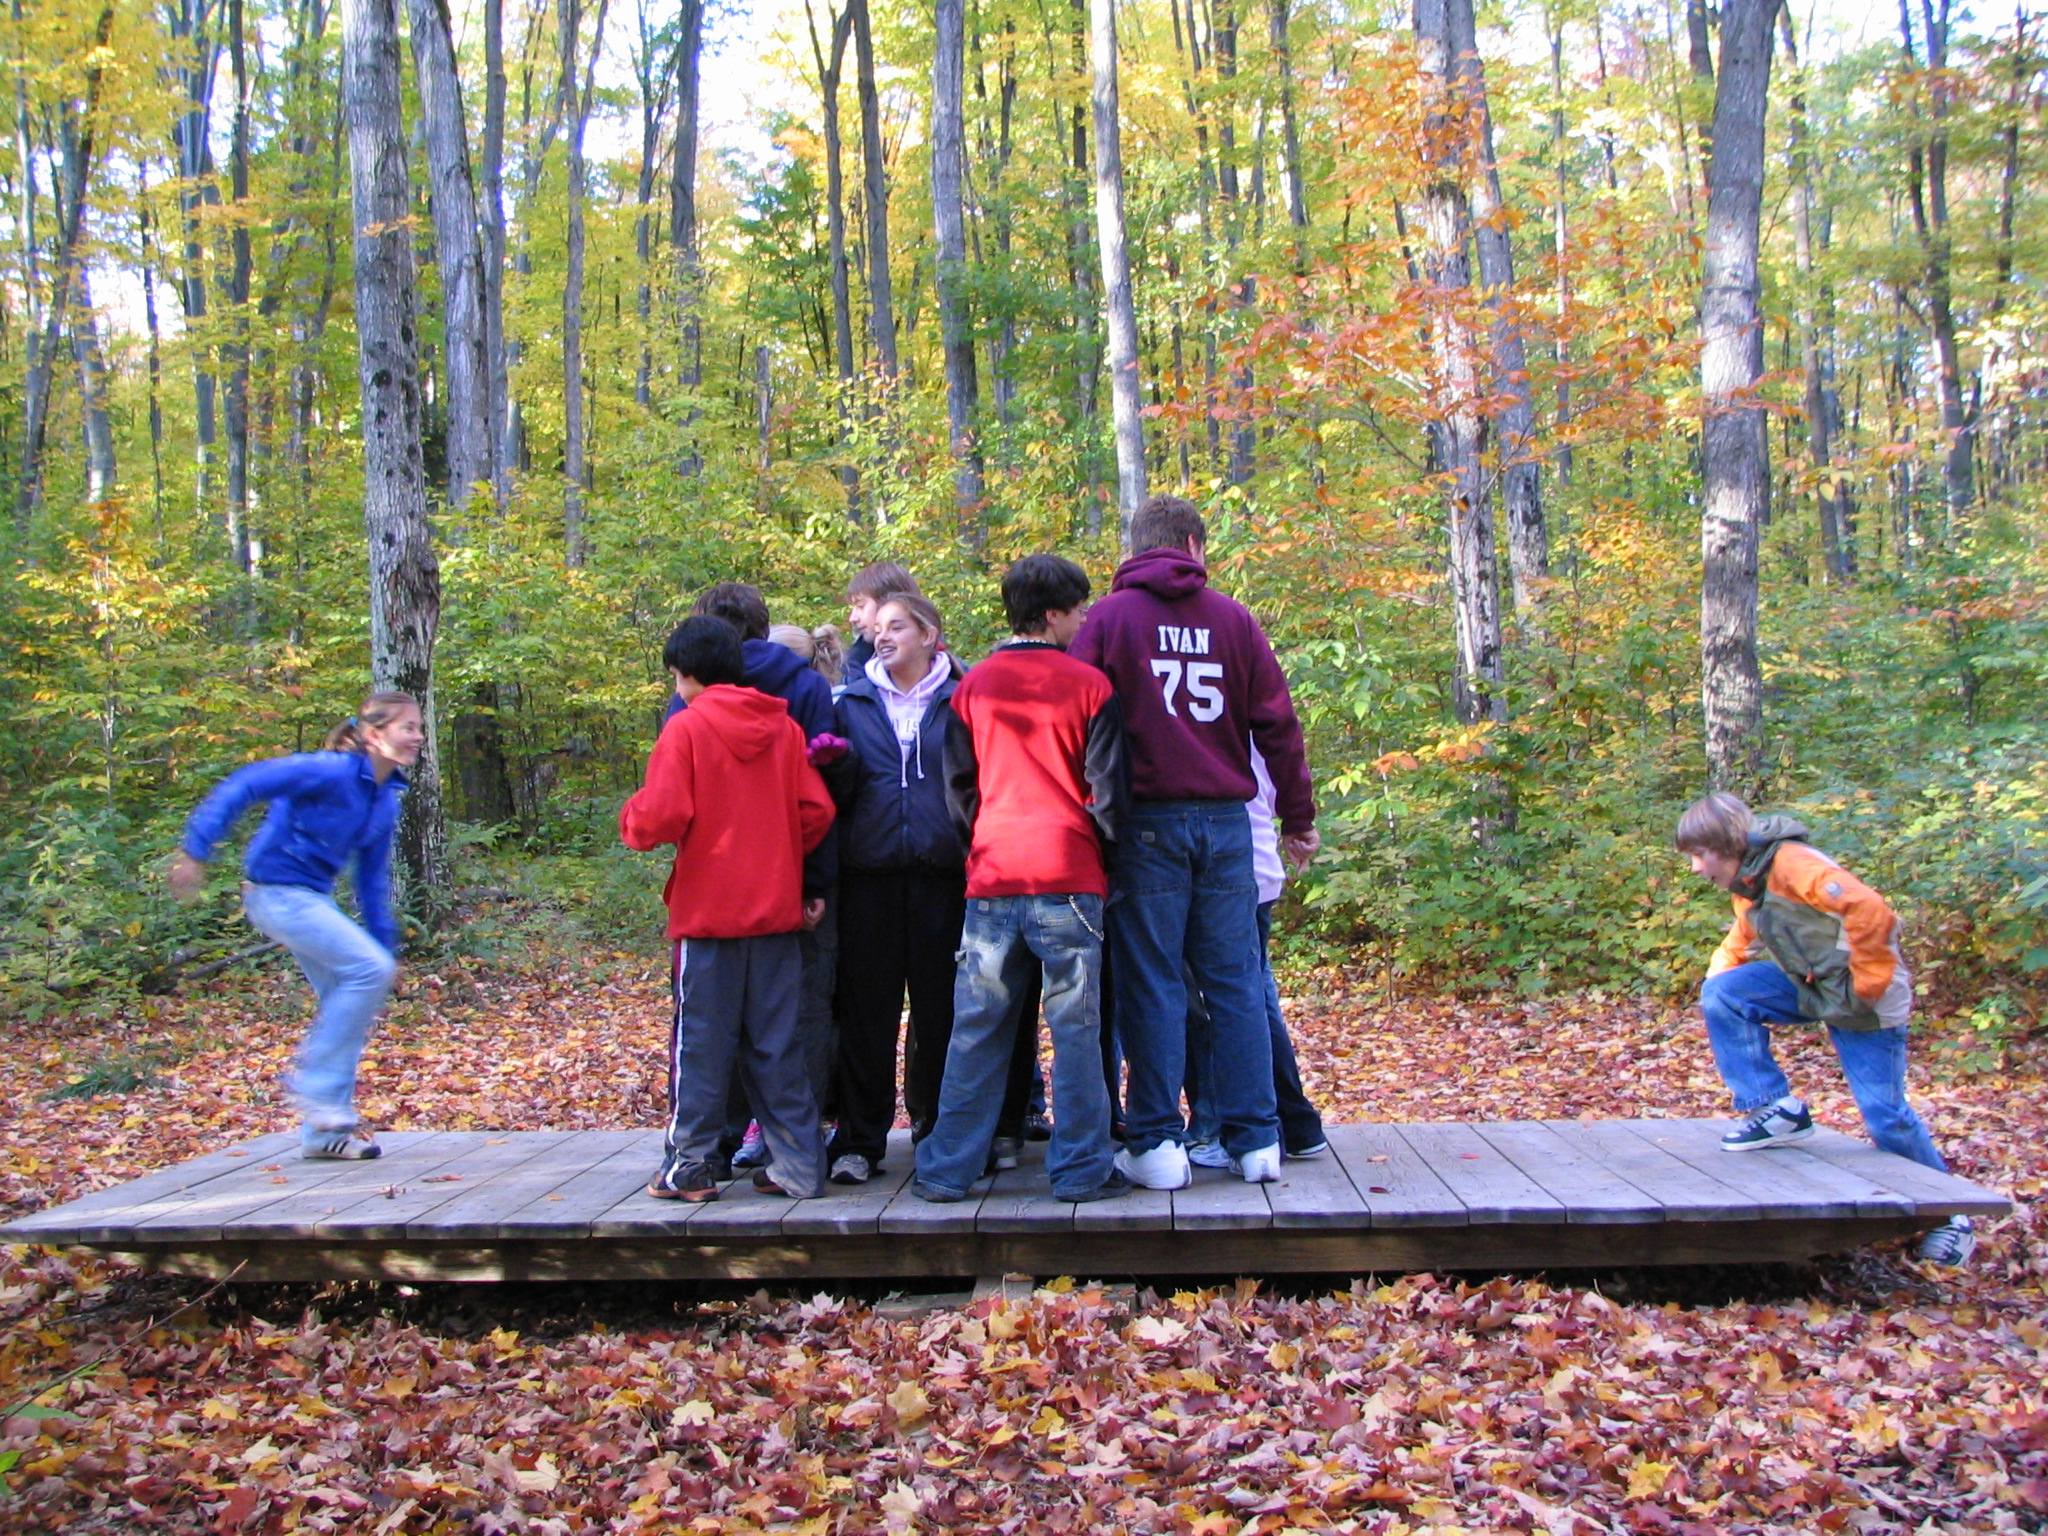 A group of students work to balance a giant teeter-totter.